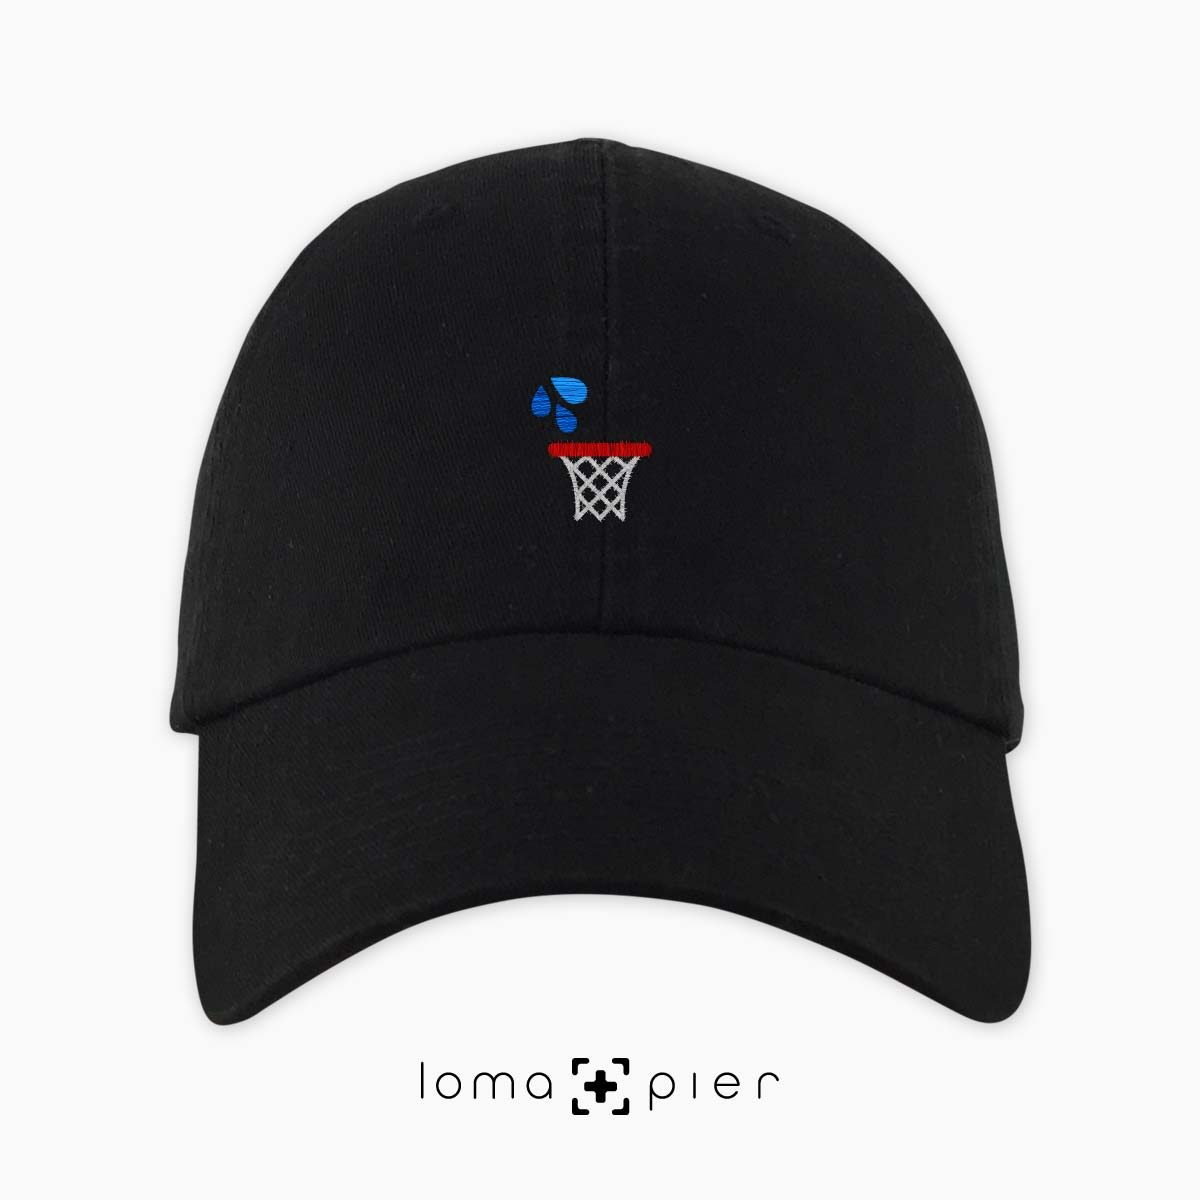 WET JUMPER basketball hoop icon embroidered on a black unstructured dad hat by loma+pier hat store made in the USA